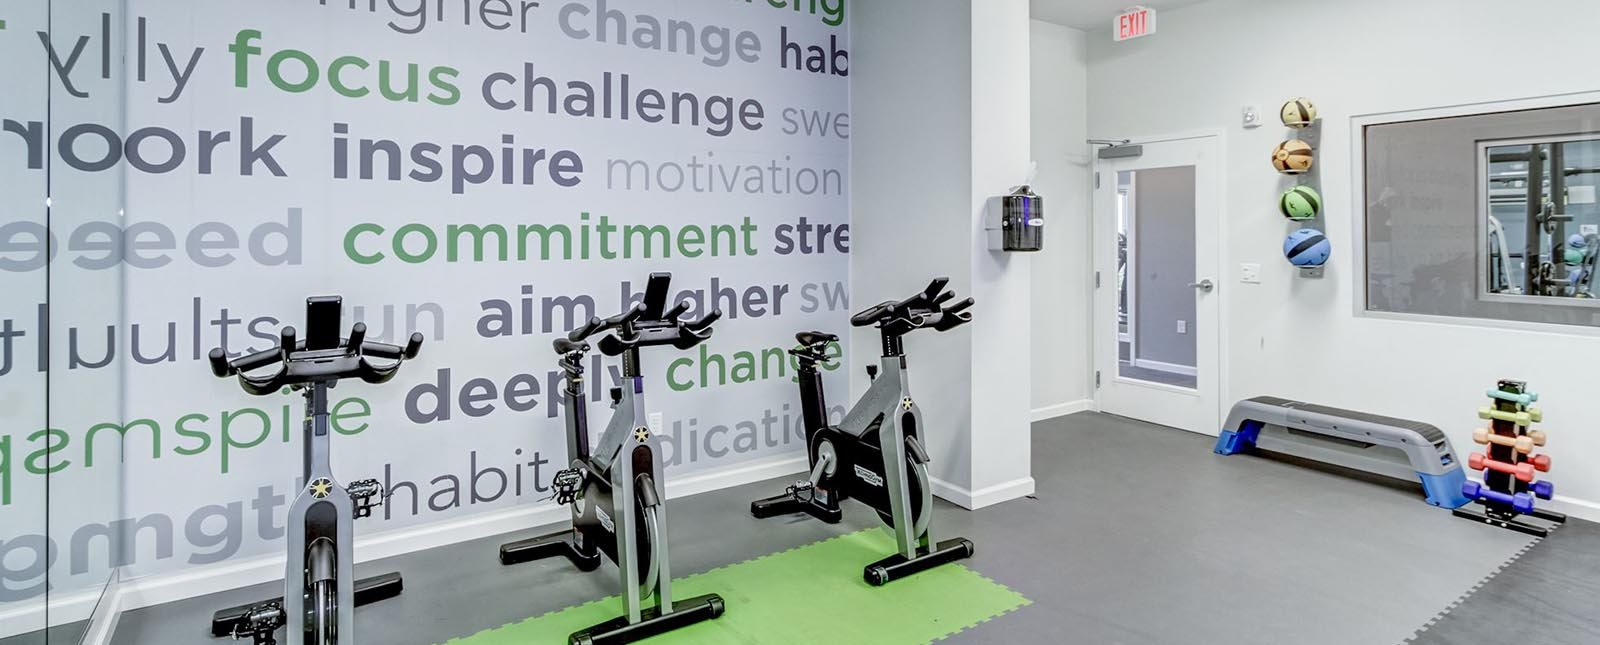 Spin Bikes of The Haven luxury apartments in Malvern, PA